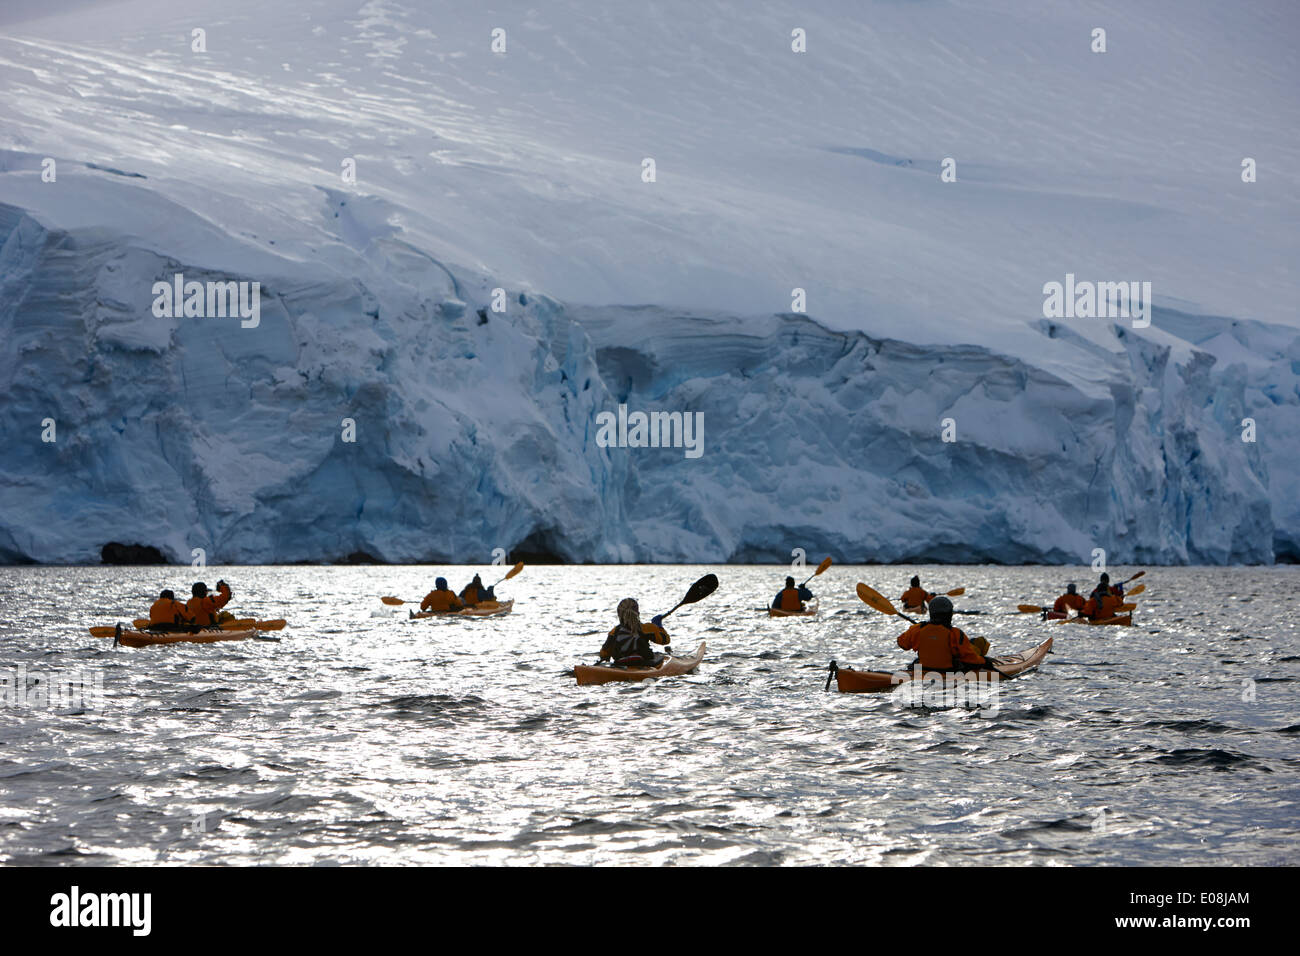 group of sea kayakers in port lockroy antarctica - Stock Image